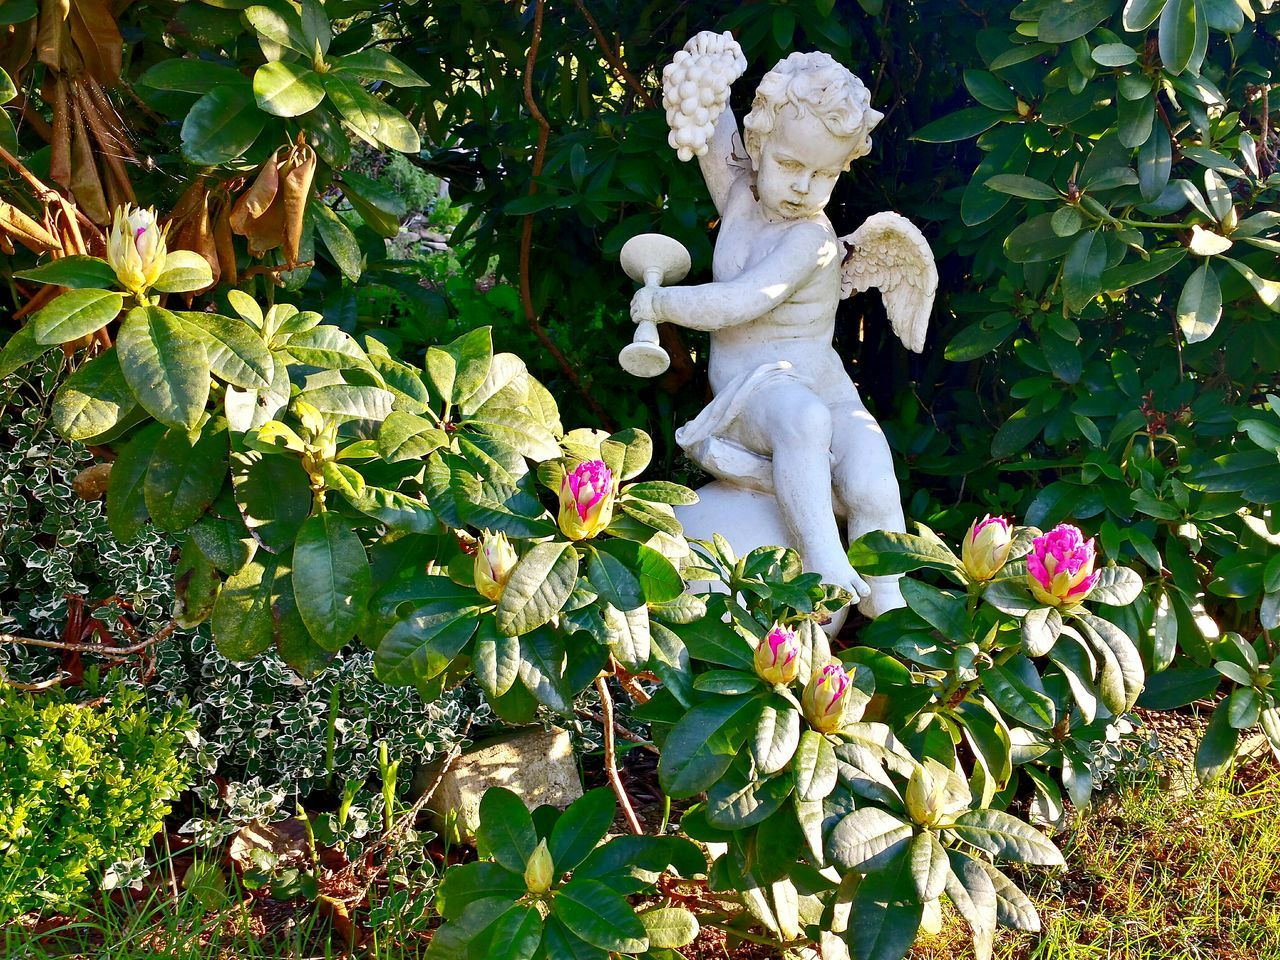 Angel Rhododendron Rhododendron Buds Rhododendron Knospen, unterschiedlich weit geőffnet. Angel With Rapes Angel Statue Admidst Green Leaves White Angel Weißer Engel Engelsfigur, im vordergrund Blühten . Beliebte Fotos Ladyphotographerofthemonth Angel Statue Angels Garden Statues Beautiful Composition Beautiful Combination Garden Decor Gardens Garden Photography Garden Sunkissed Flowers Sunkissed Von Der Sonne Beschienen